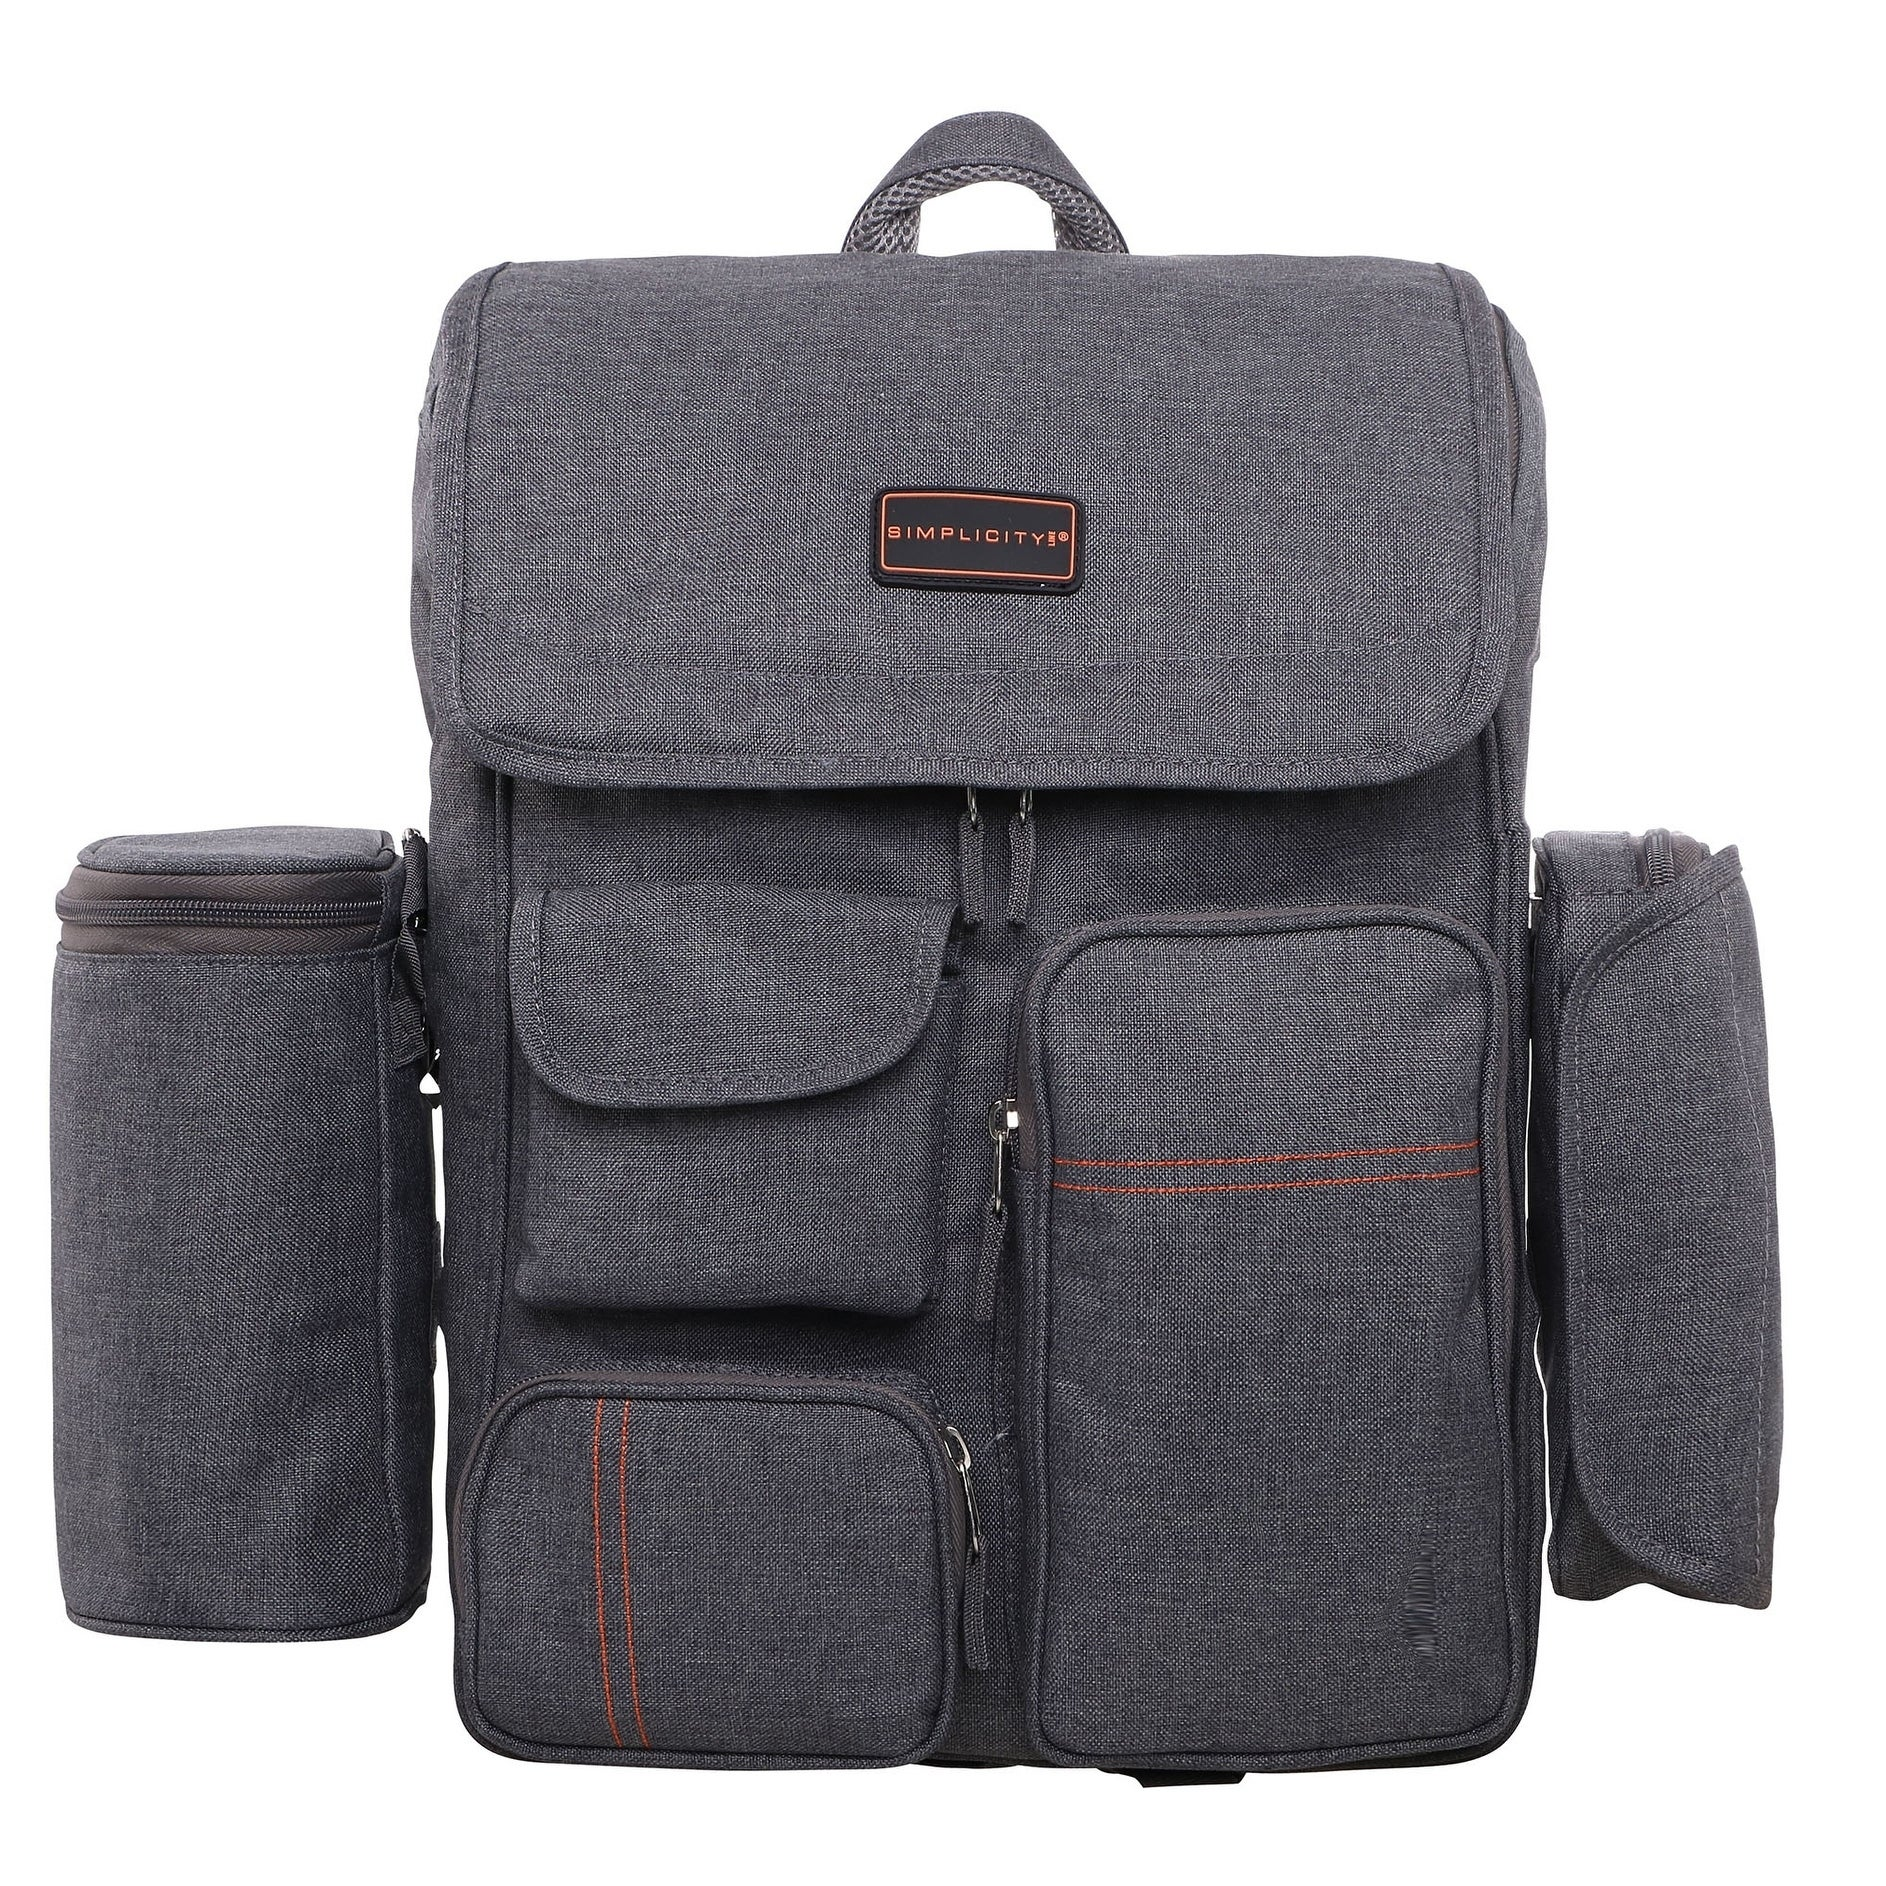 Multi Function Travel Diaper Bag Backpack Ny Bags W Stroller Straps Changing Pad